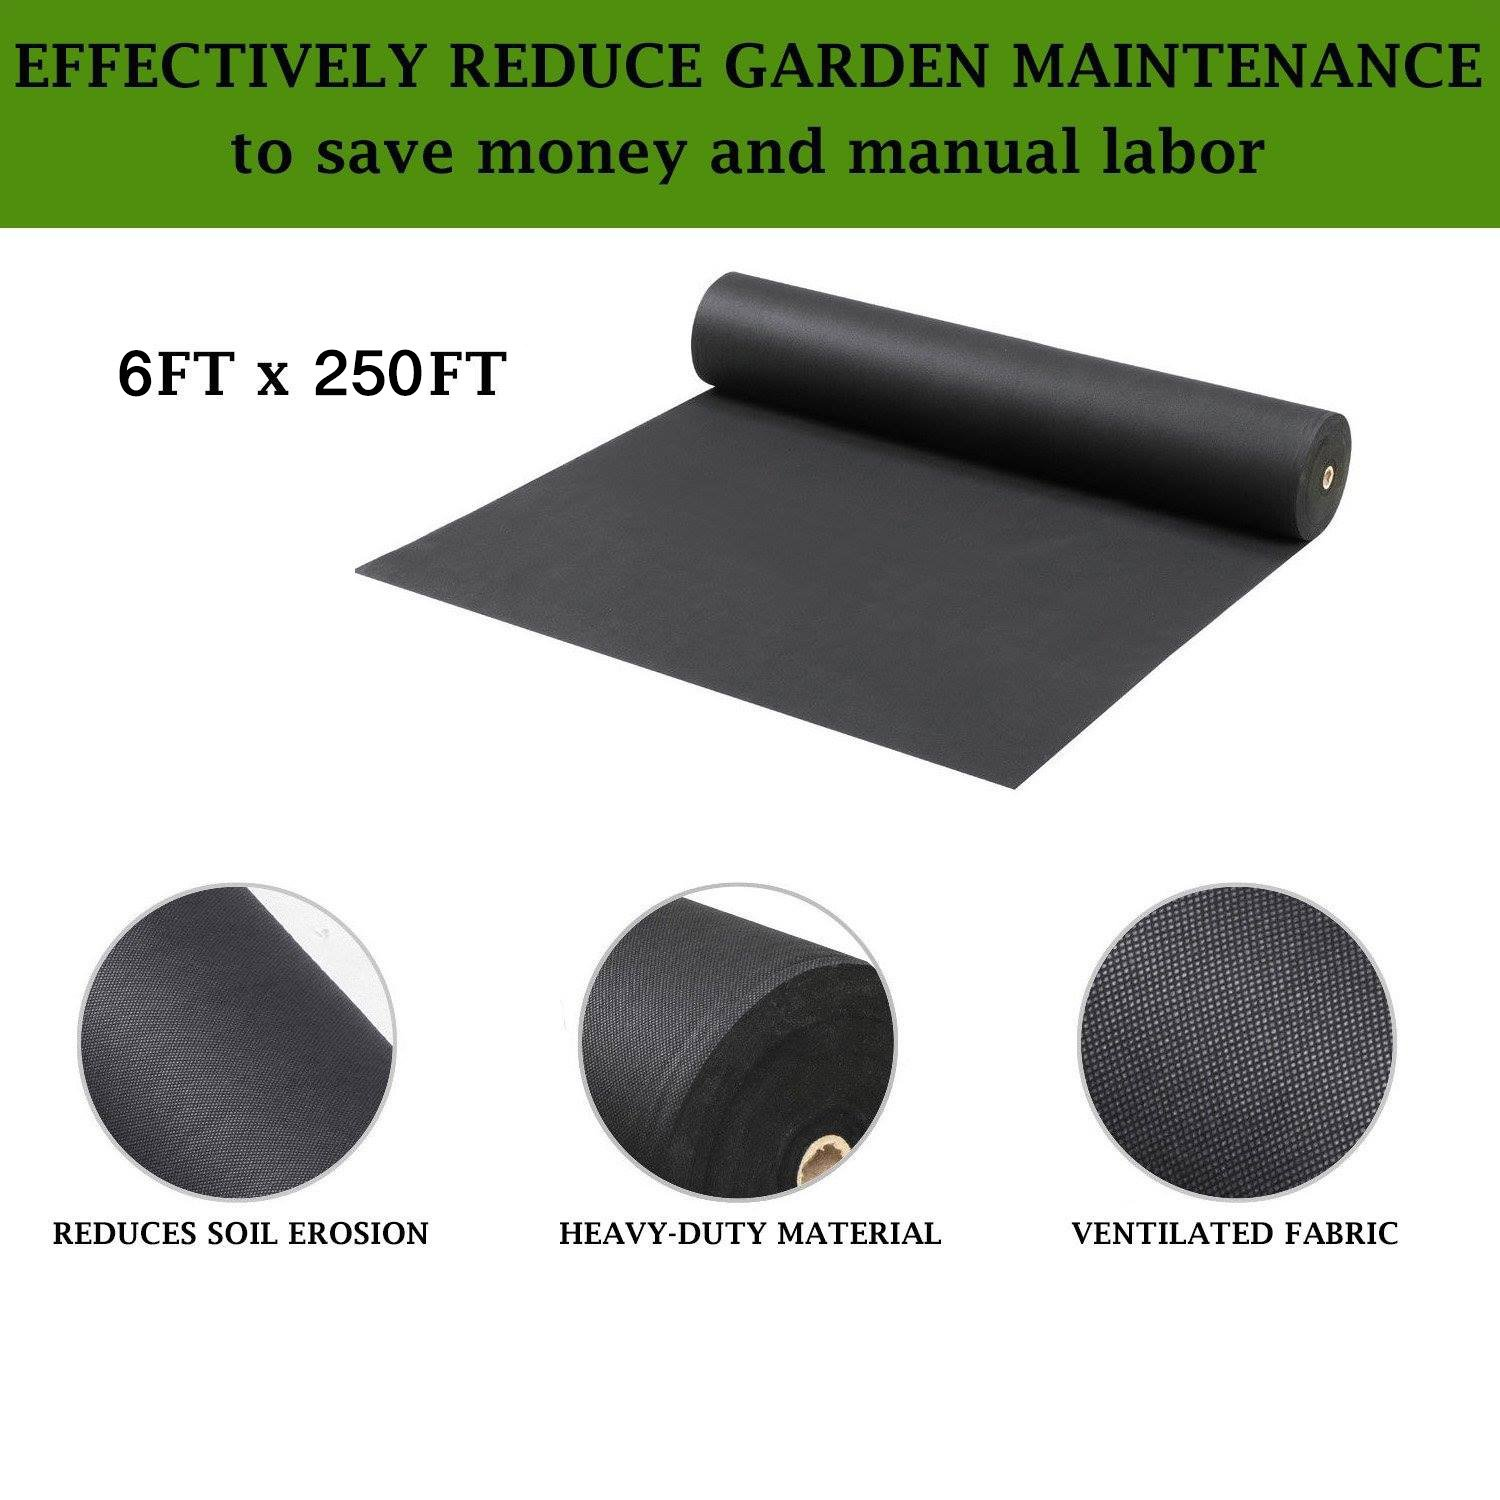 Pro 5 Ounce Weed Barrier - Weed Control Landscape Fabric - Woven Geotextile Fabric - Erosion Control Mulch Mat - Garden Ground Cover Fabric - 6Ft X 250Ft Black by UNI-SOURCE-TEXTILE (Image #2)